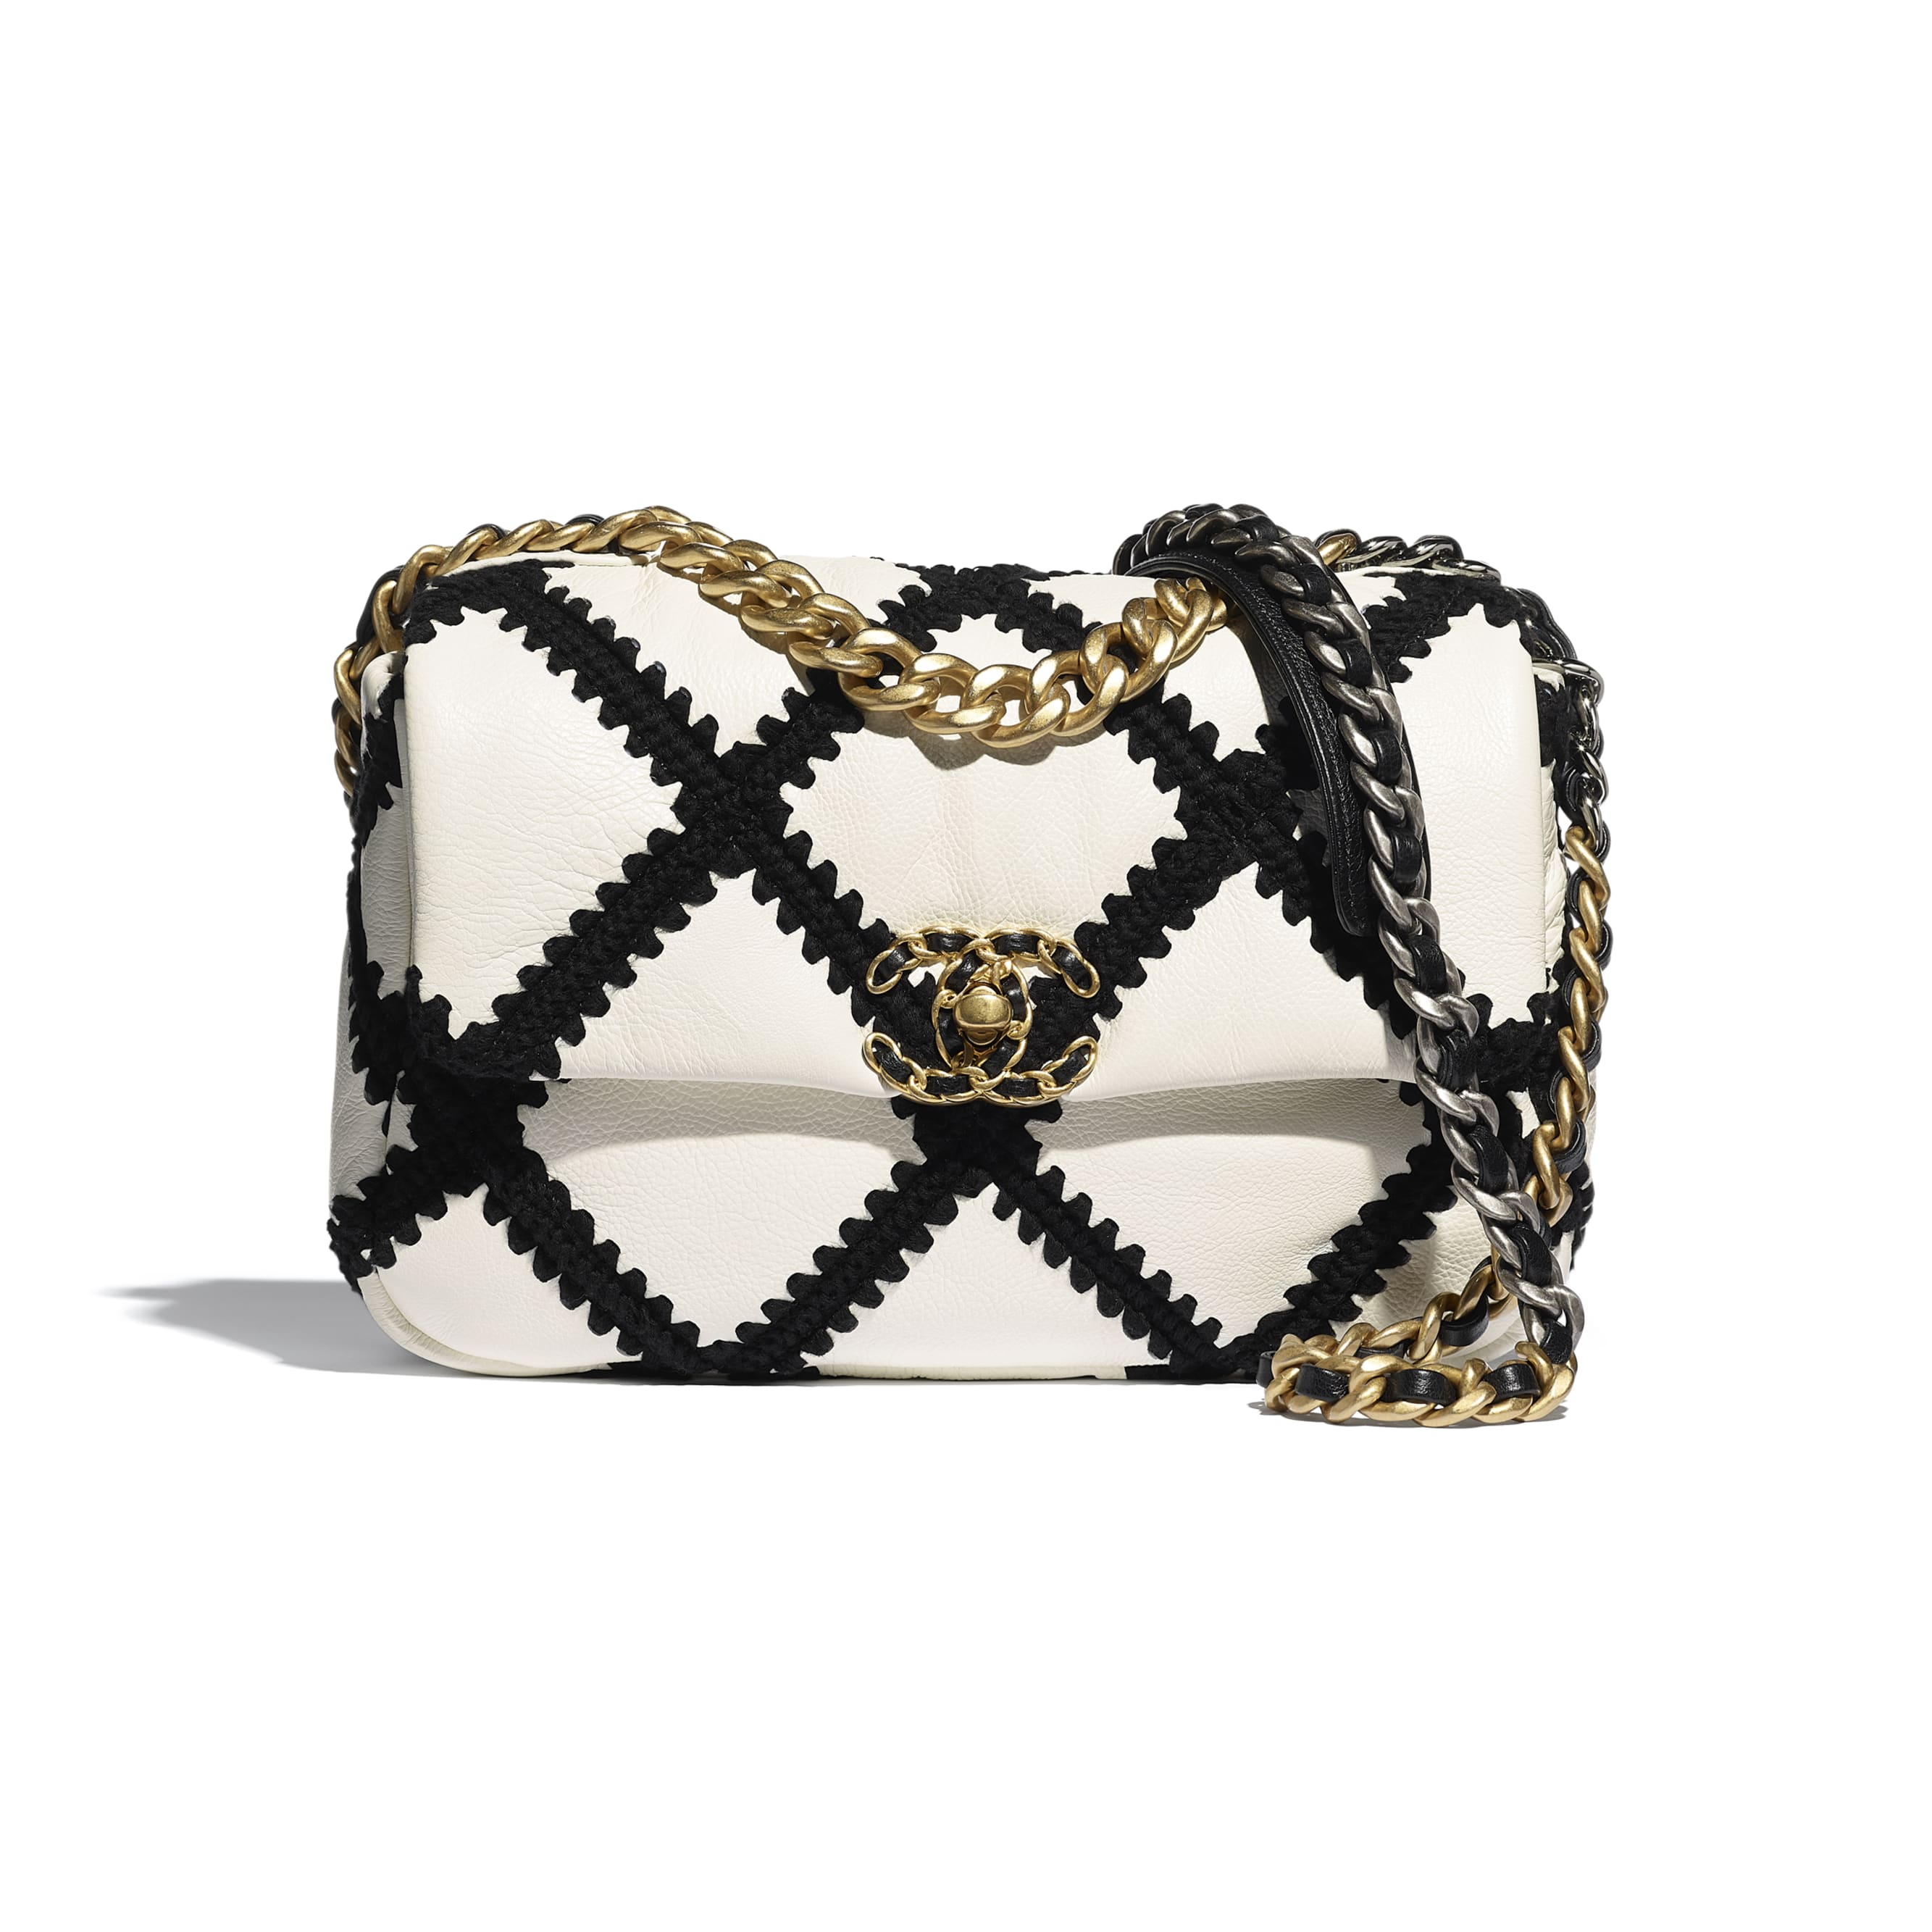 CHANEL 19 Flap Bag - White & Black - Calfskin, Crochet, Gold-Tone, Silver-Tone & Ruthenium-Finish Metal - CHANEL - Default view - see standard sized version